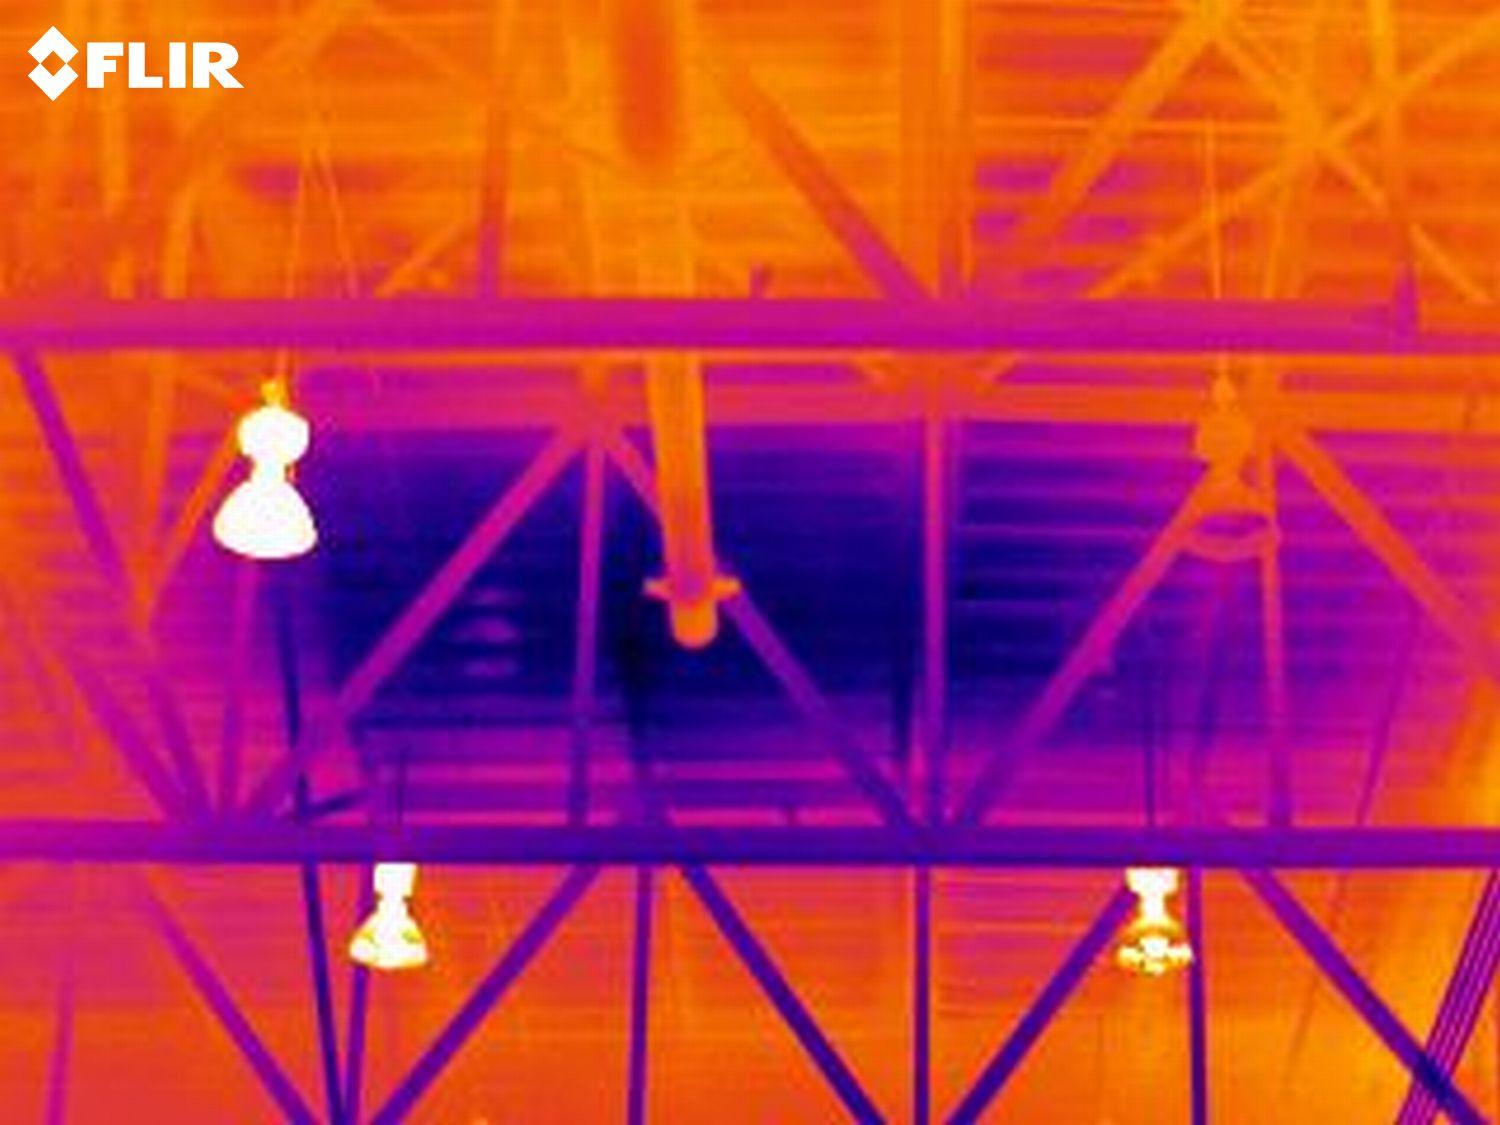 Rooftop Infrared Thermography Inspection Shows Heat Loss Areas Thermography Thermal Imaging Inspect